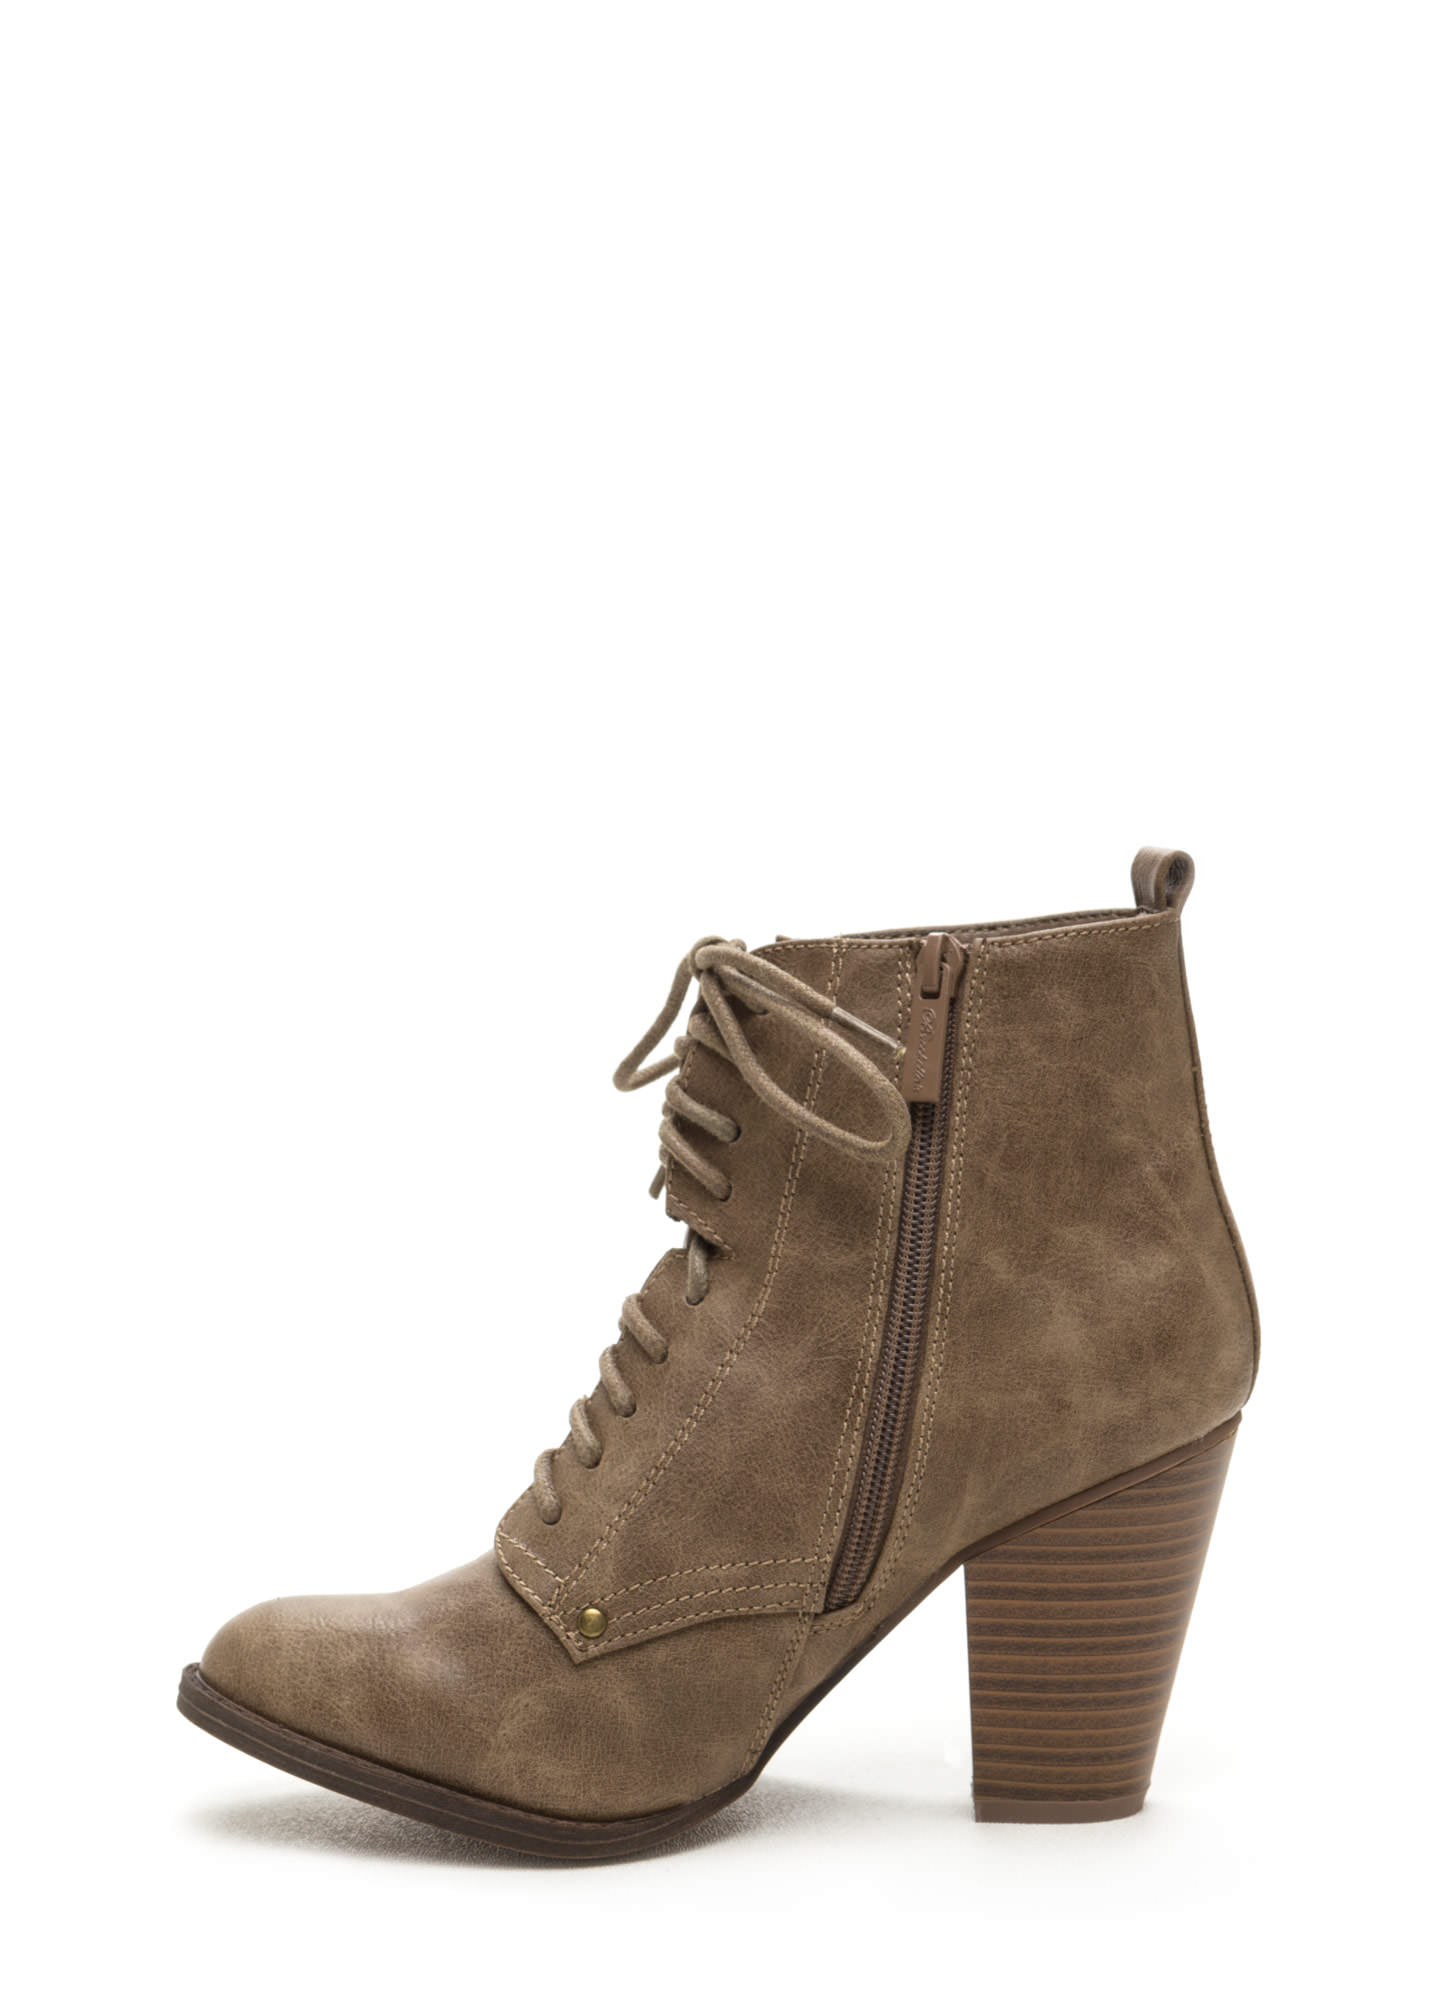 Complete Me Faux Leather Booties BEIGE